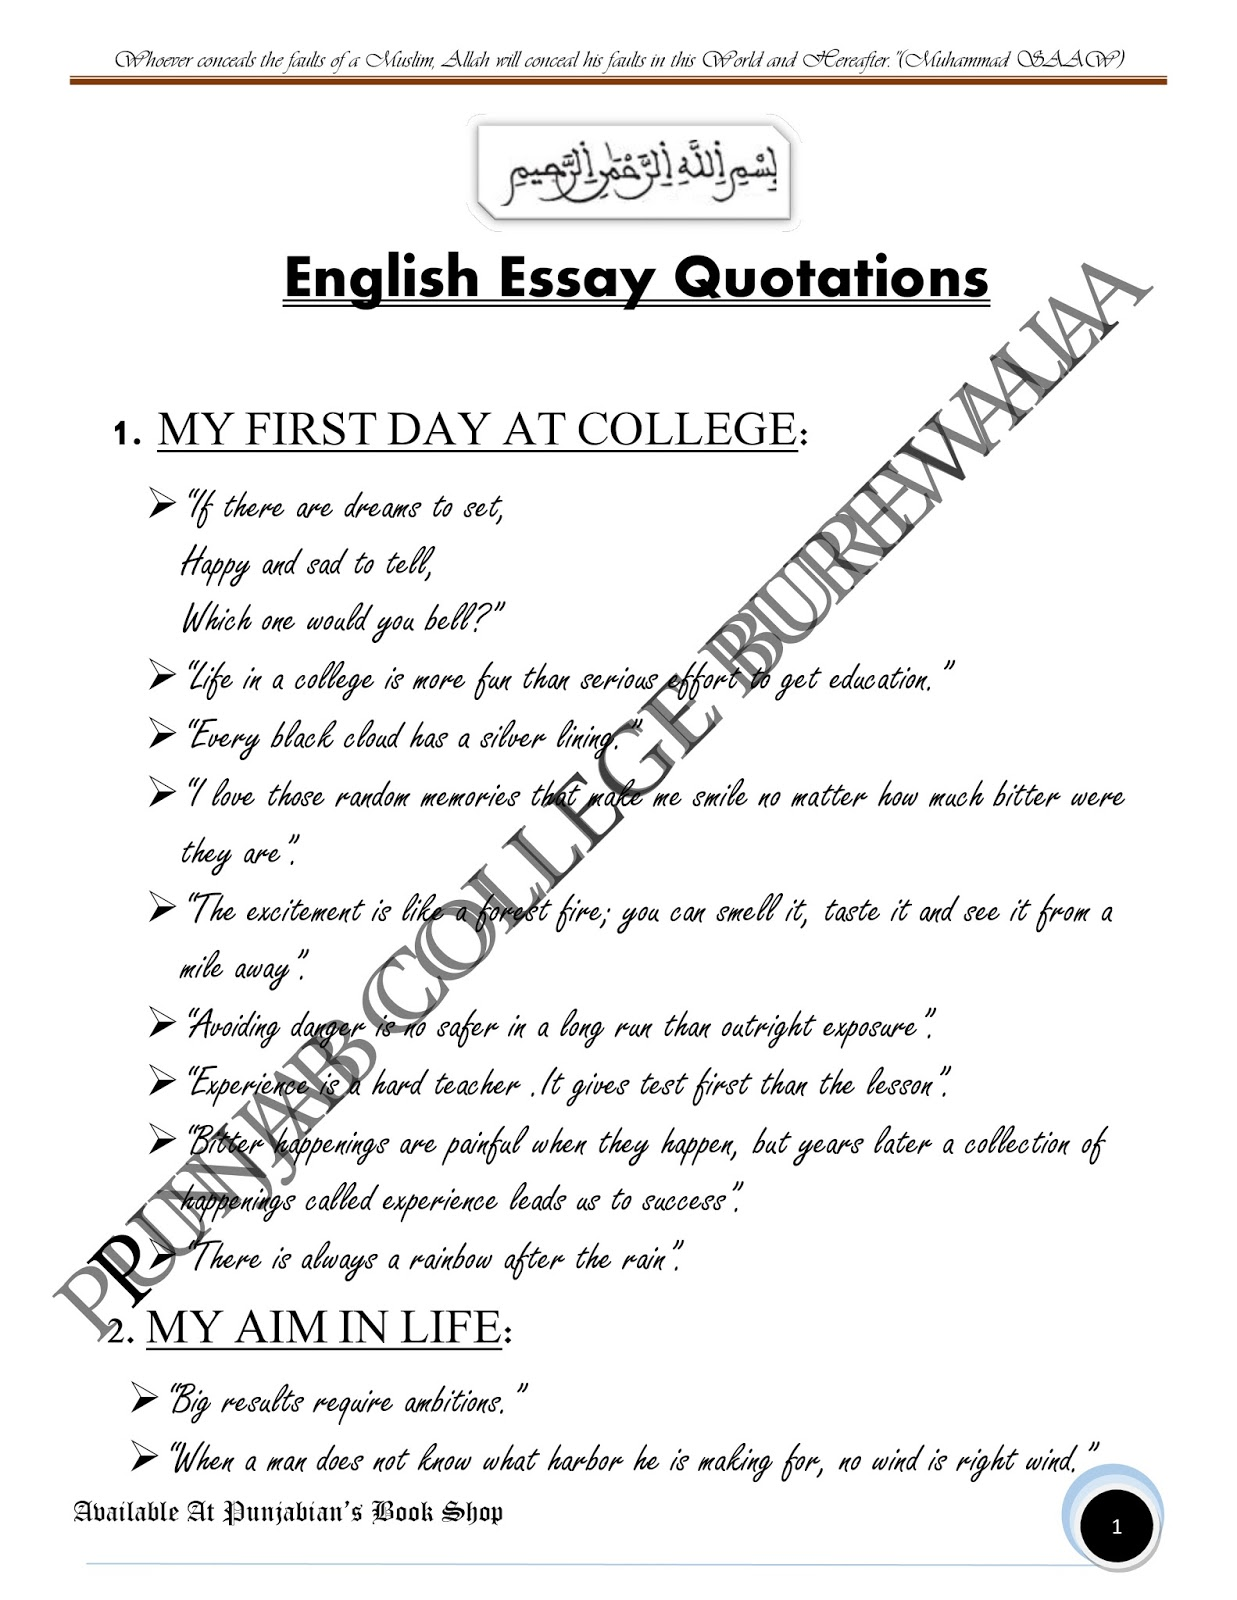 005 Quotations5bconverted5d Page Essay Example First Day Magnificent College Experience At Outline In Urdu Full